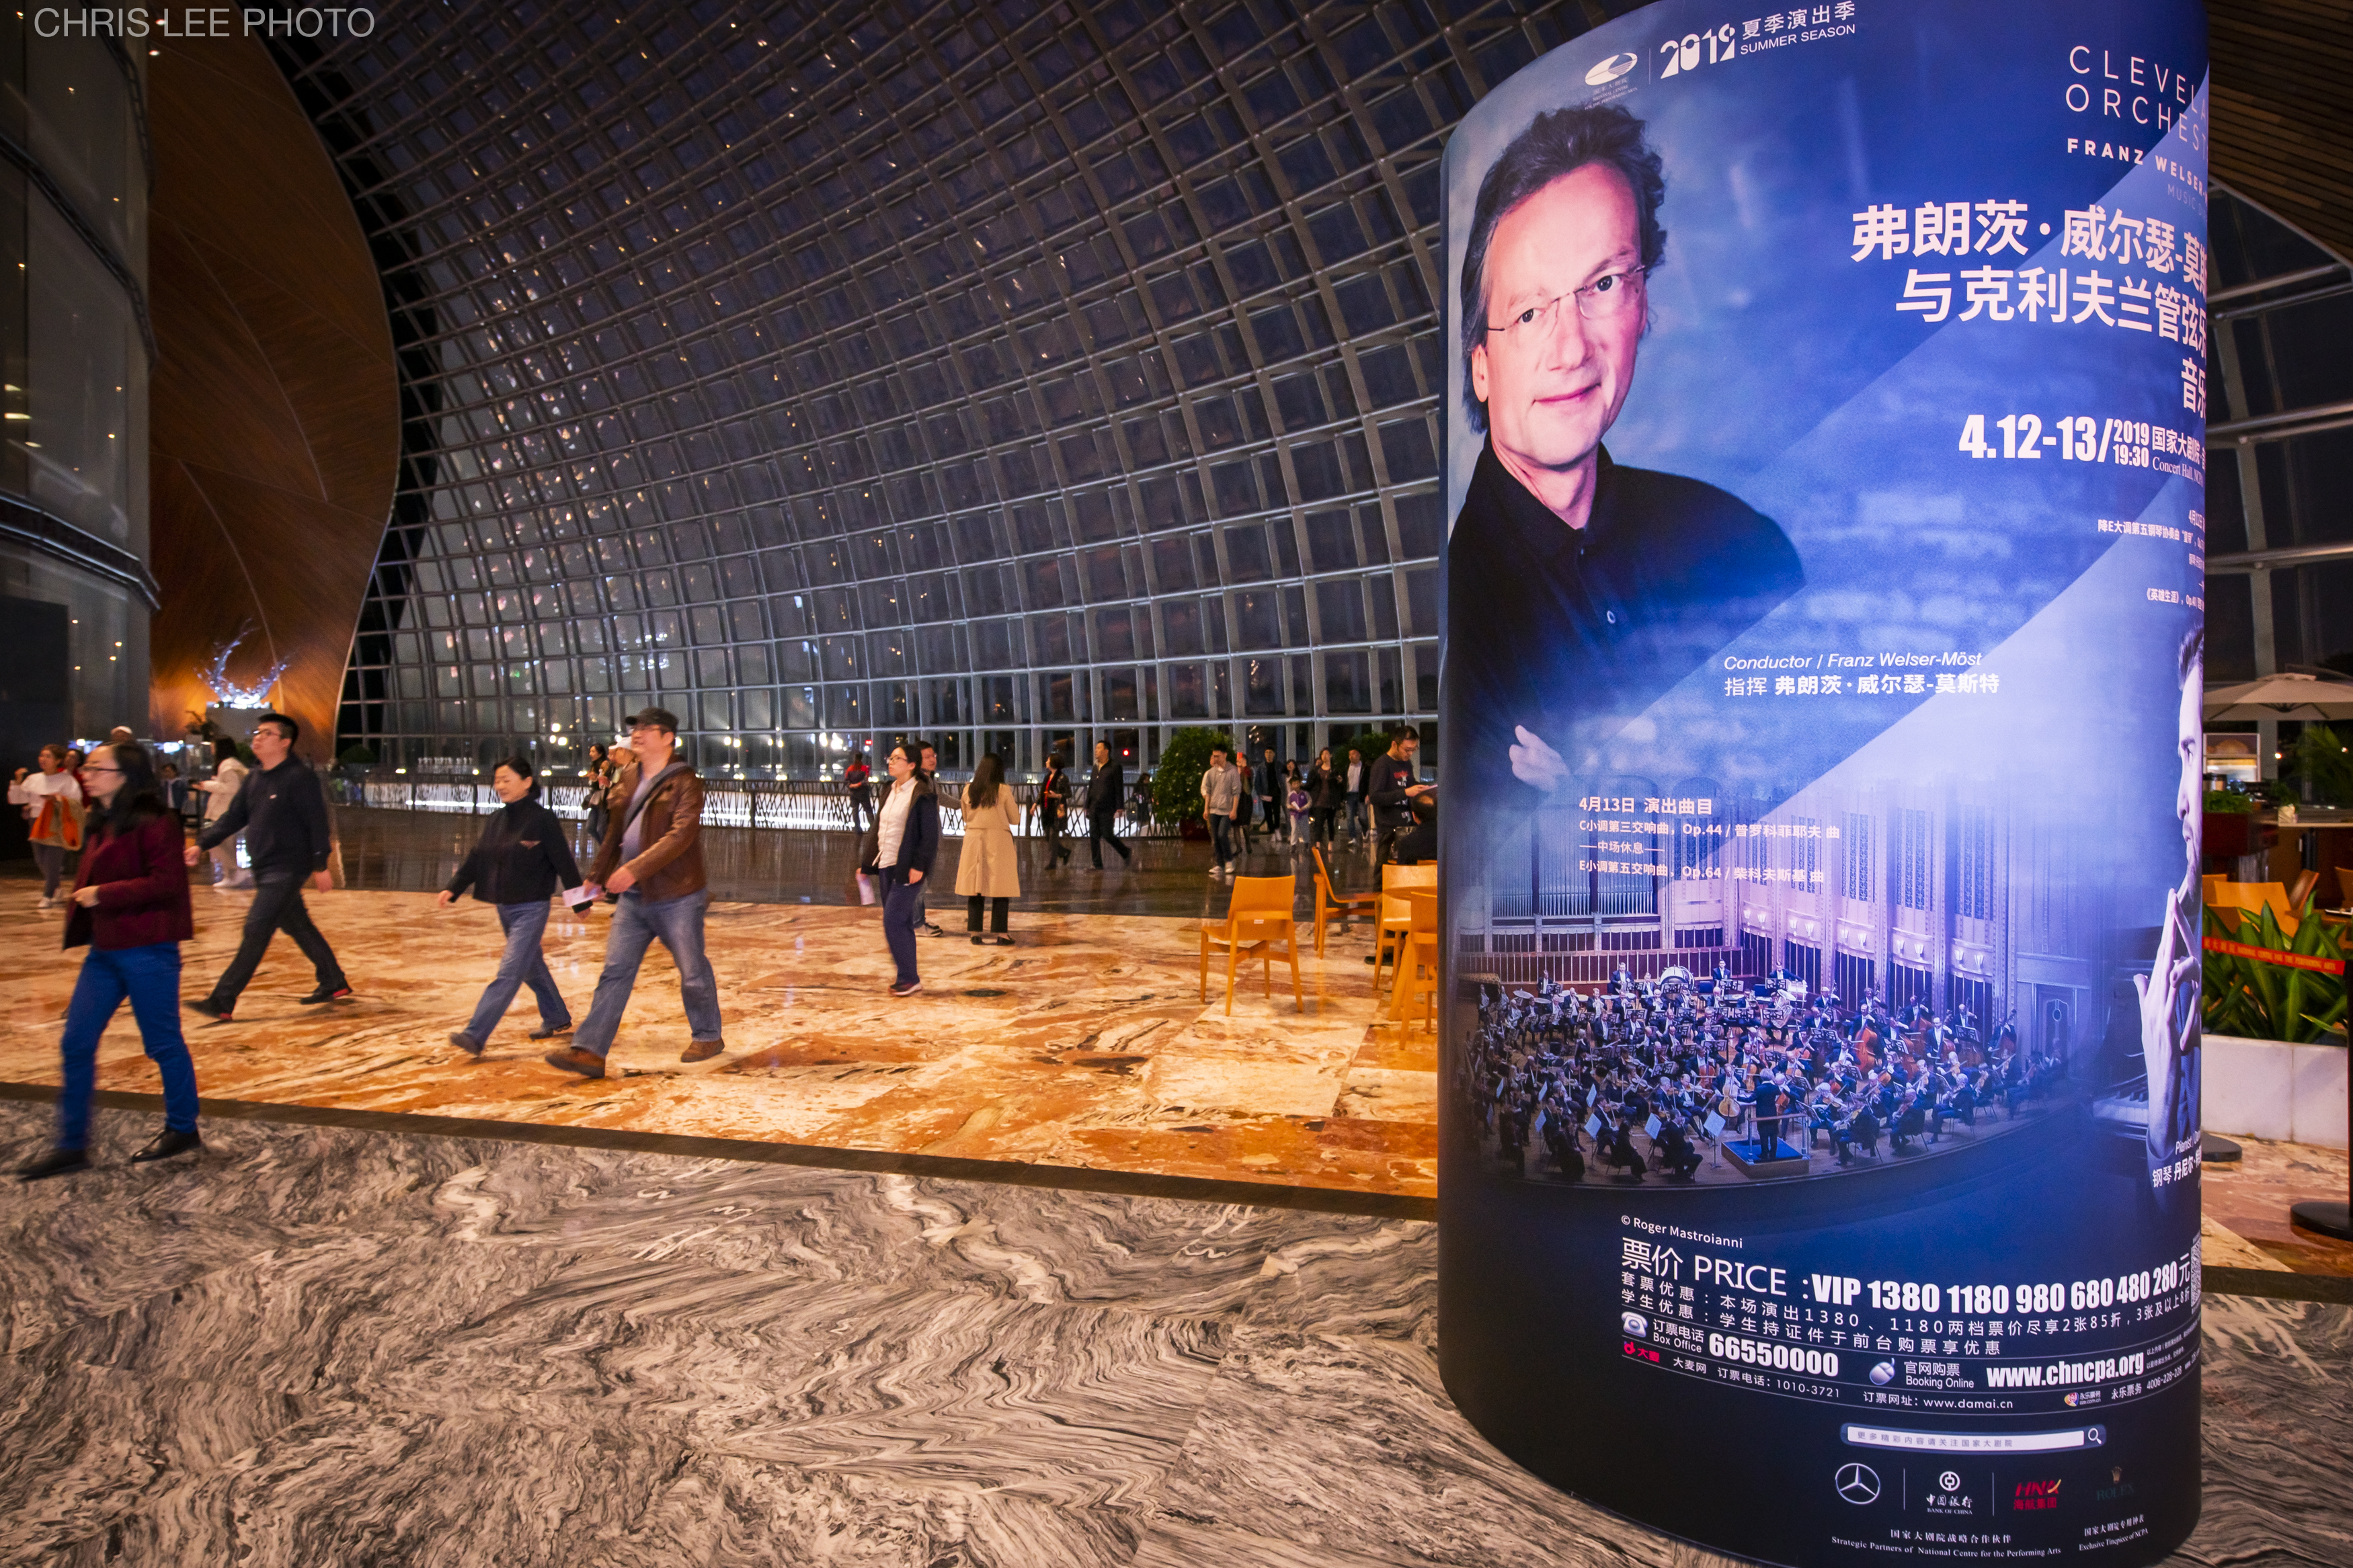 Franz Welser-Möst in Beijing with The Cleveland Orchestra